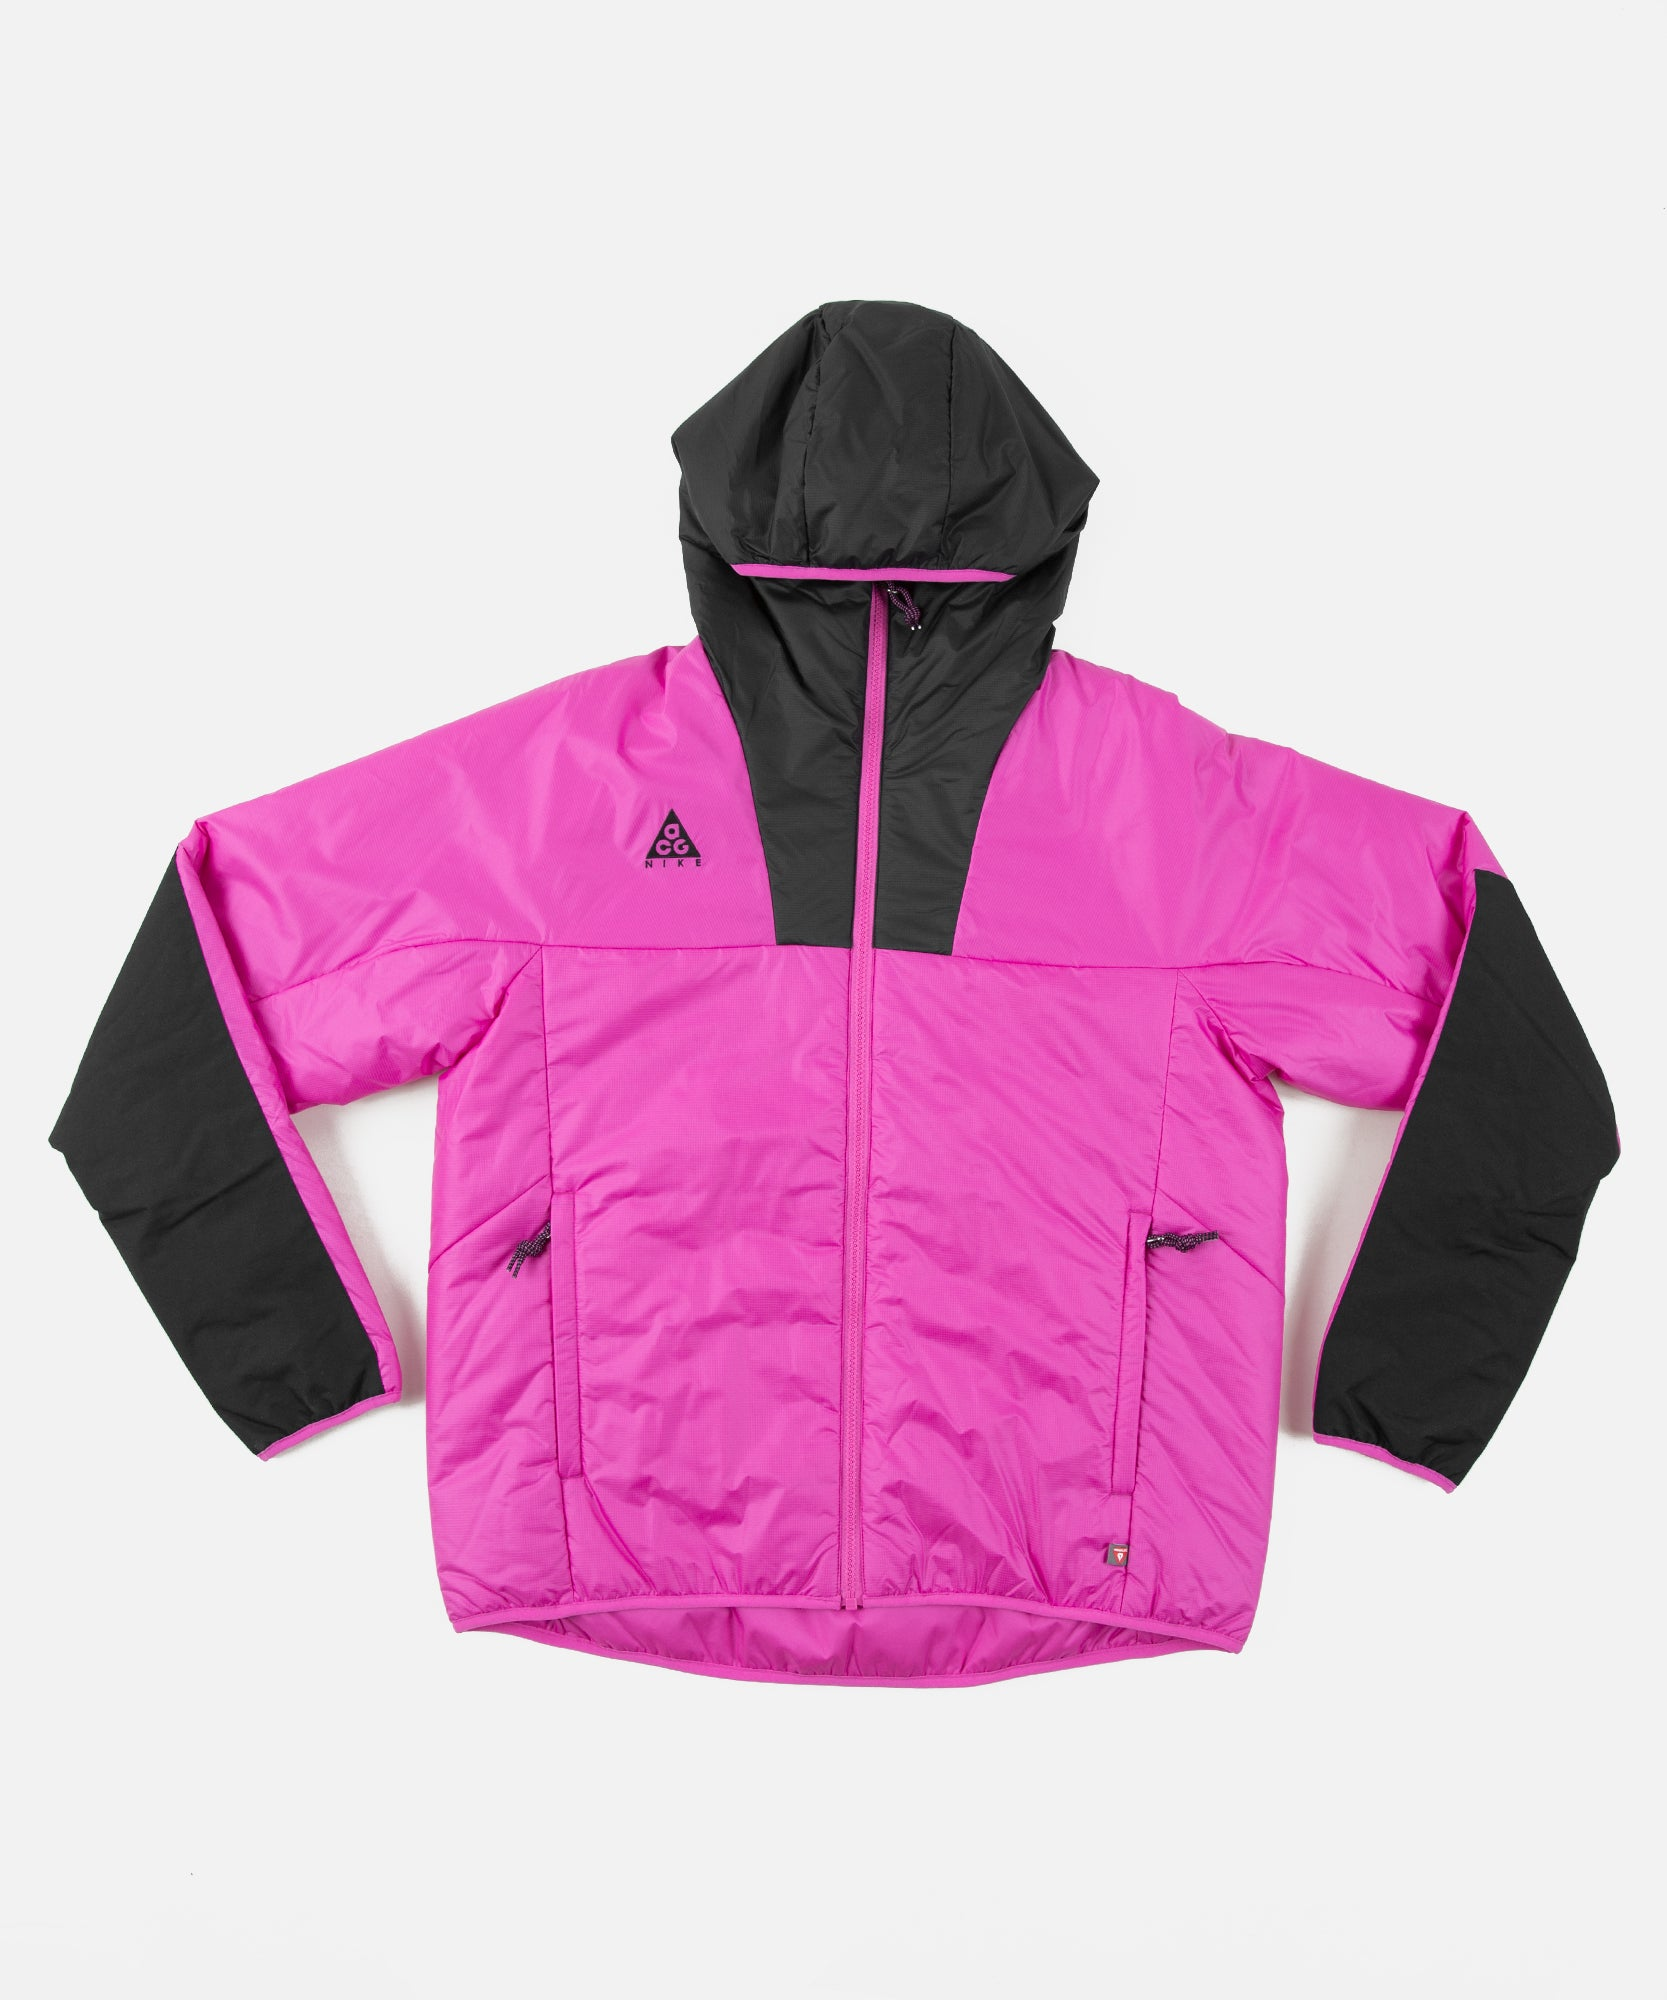 Nike ACG PrimaLoft® Hooded Jacket Fuchsia Black | Footshop